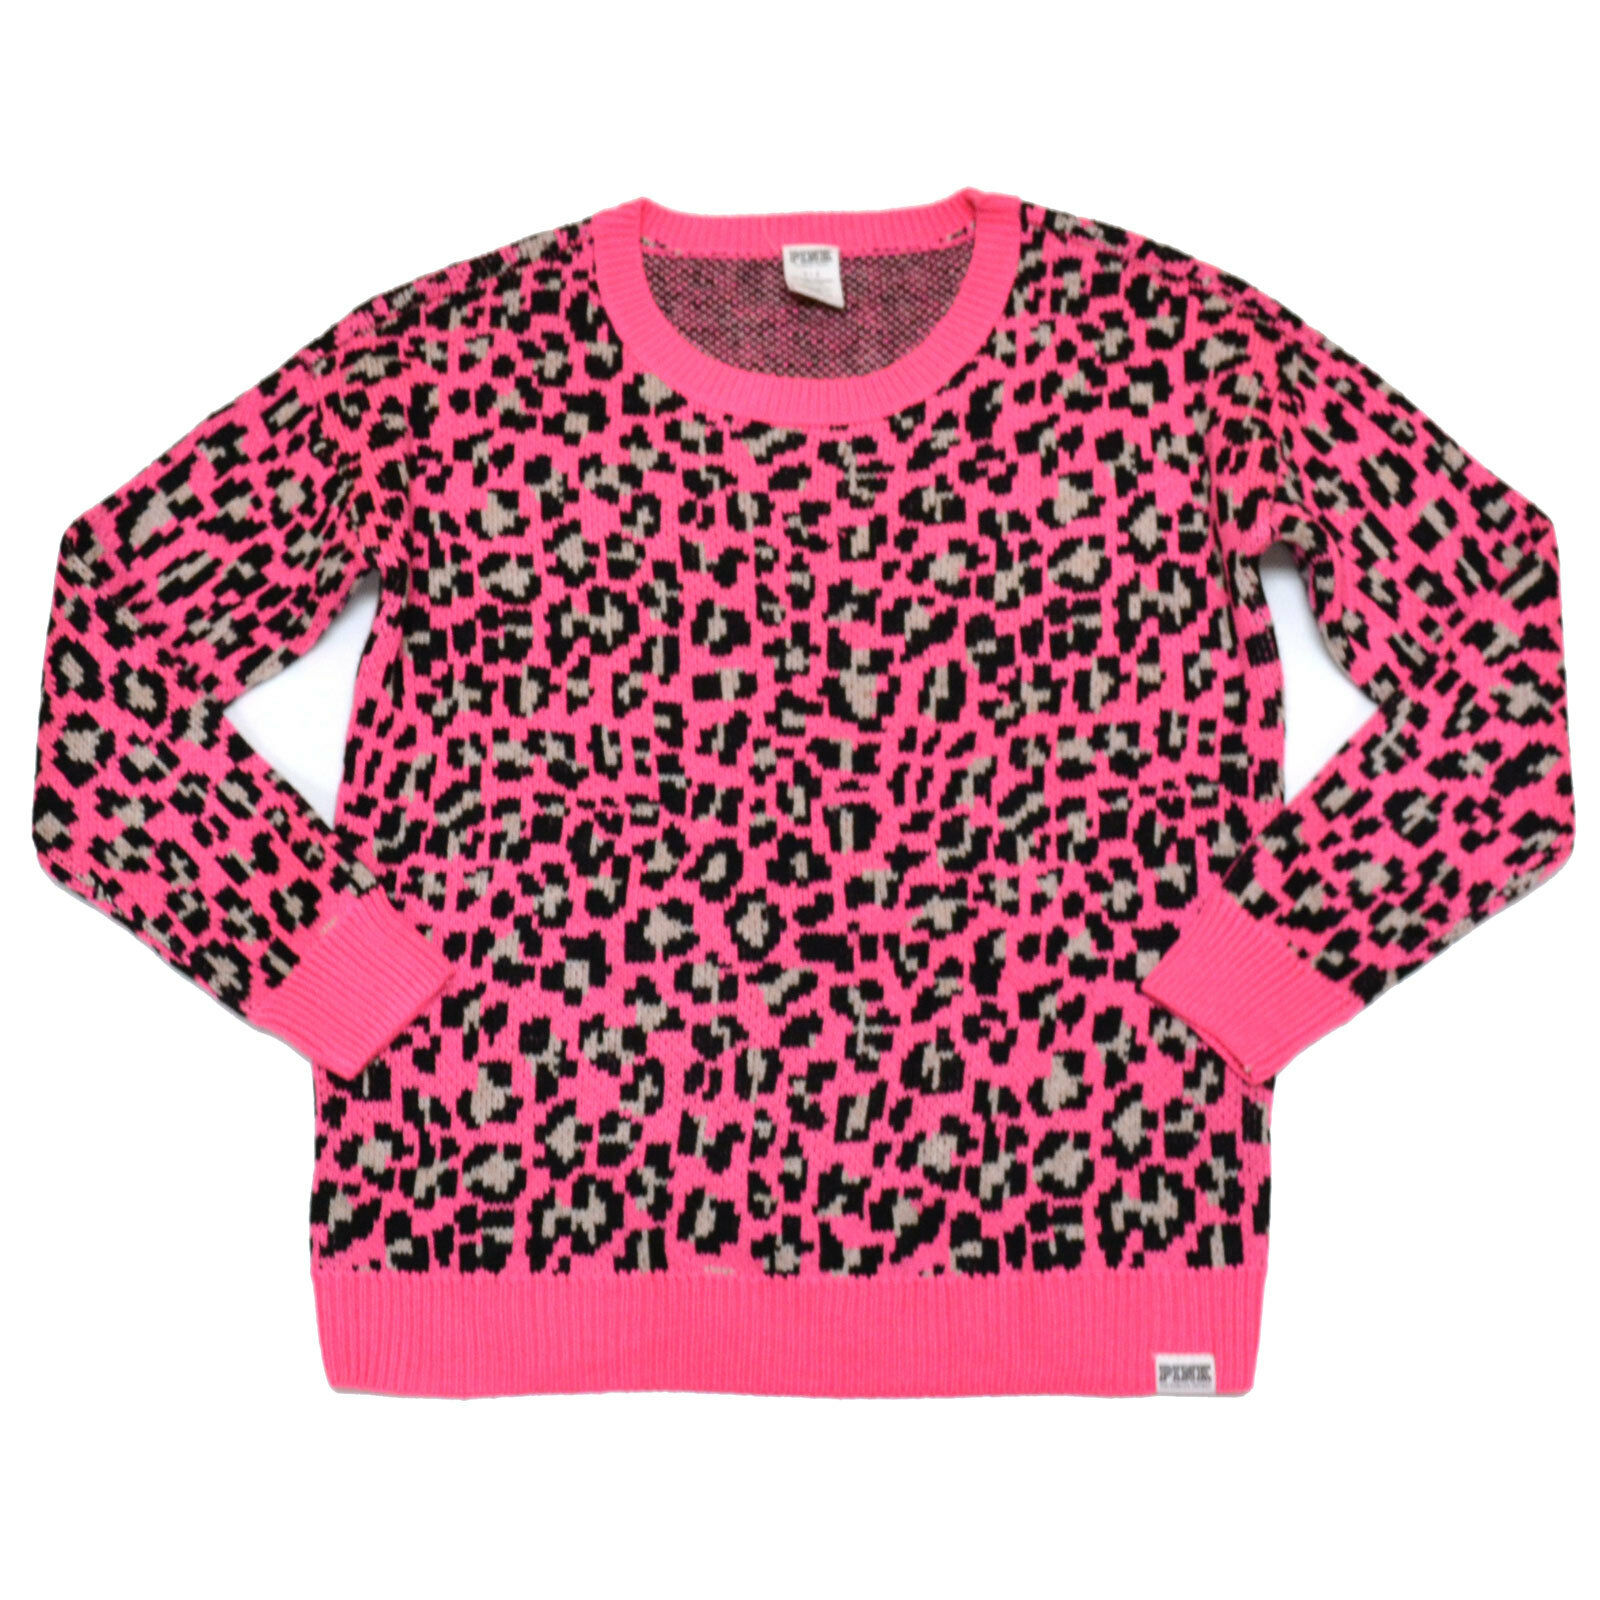 Victoria's Secret Love Pink Leopard Cheetah Sweater Hoodie ...